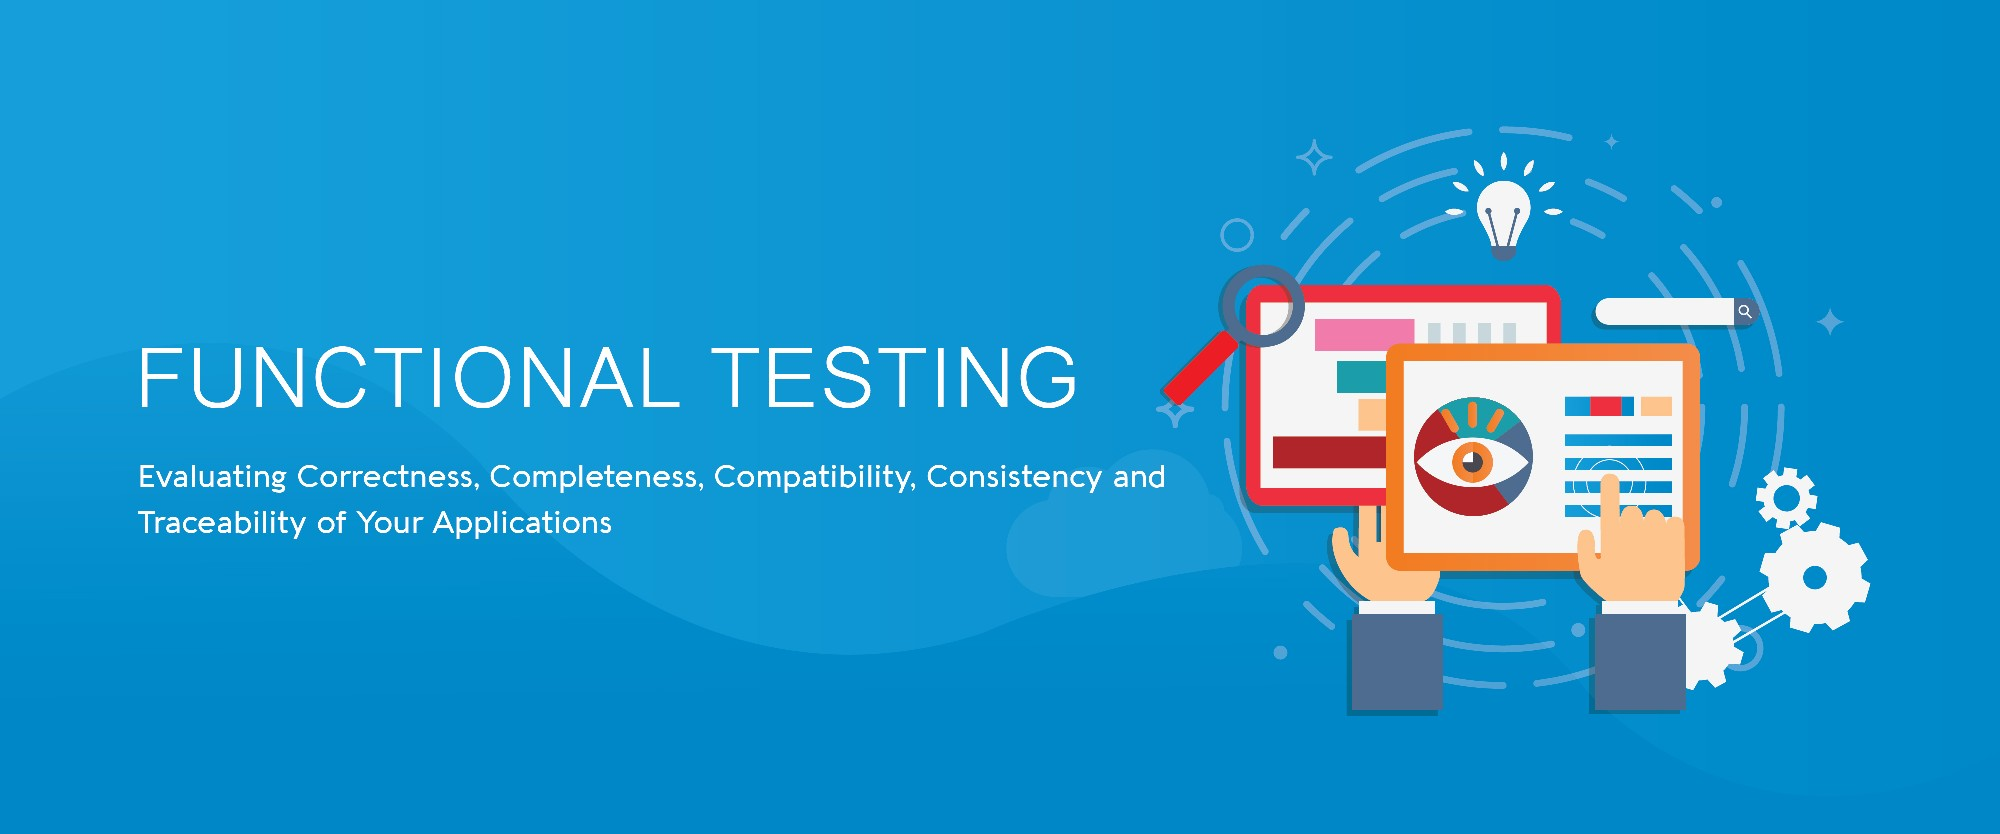 Functional Testing for your business will help for the completeness,consistency and tracebility